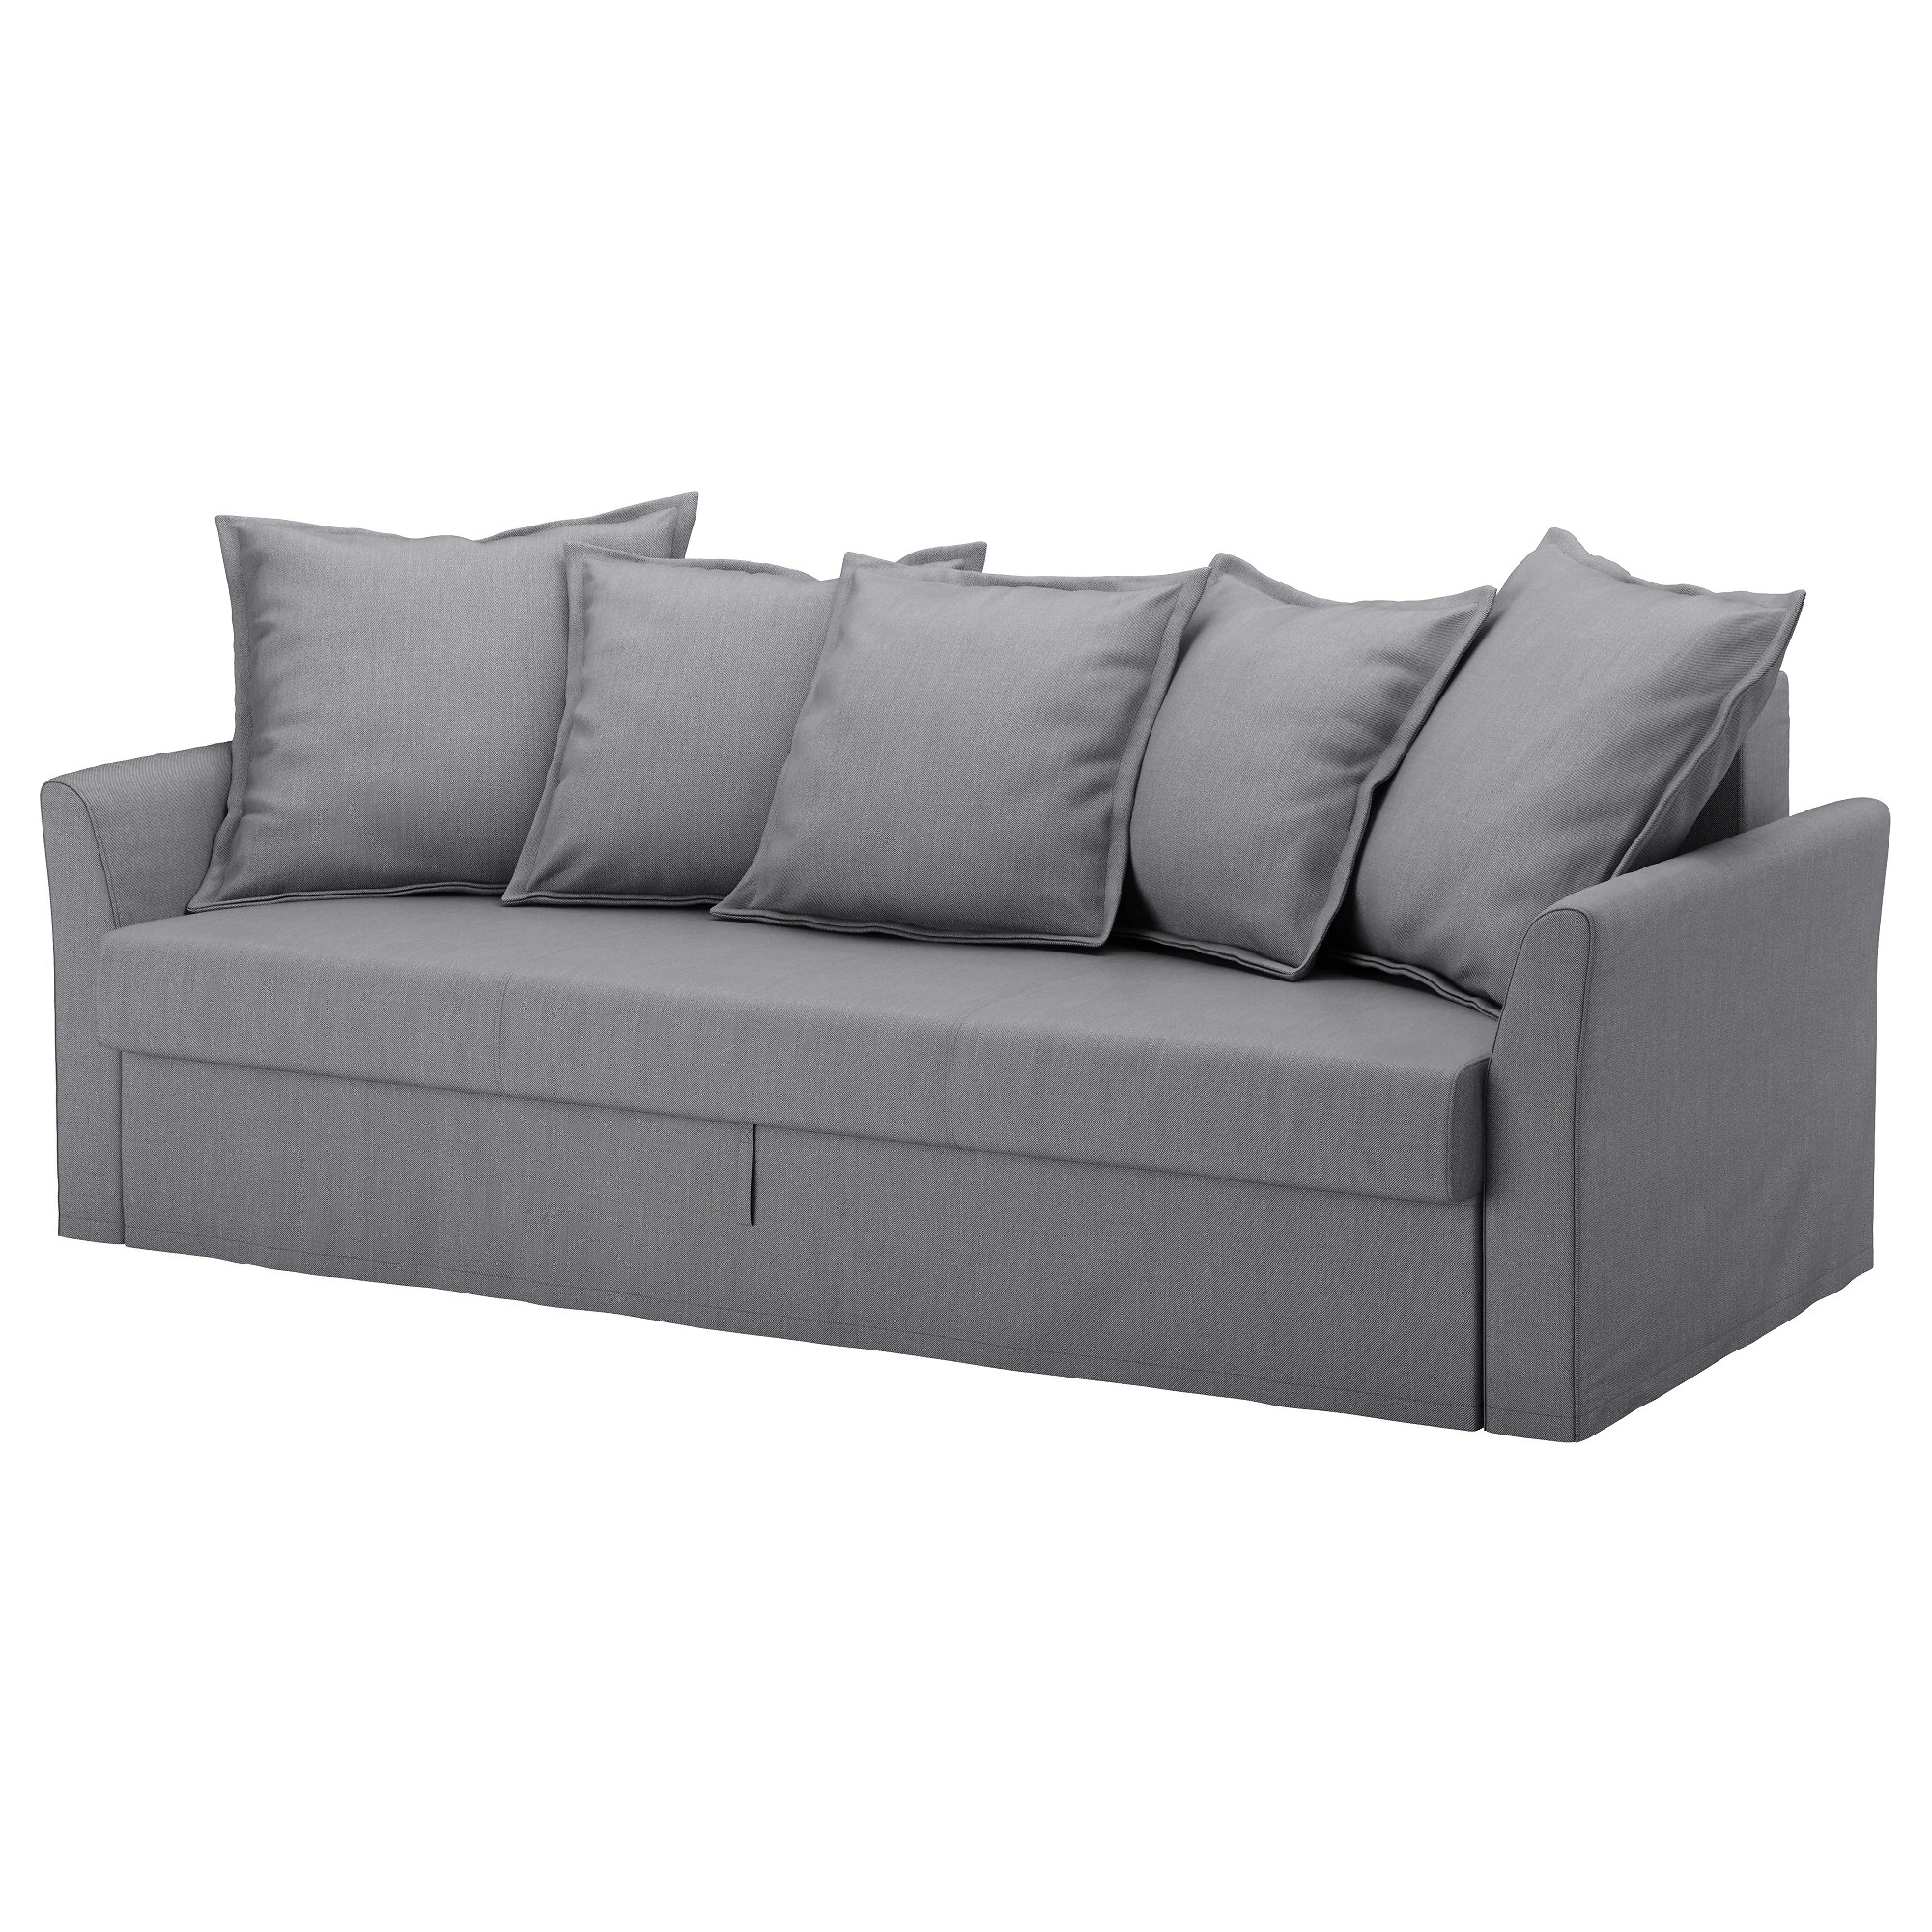 Sofa Bed For Sale Toronto Holmsund Sofa Bed Nordvalla Medium Gray